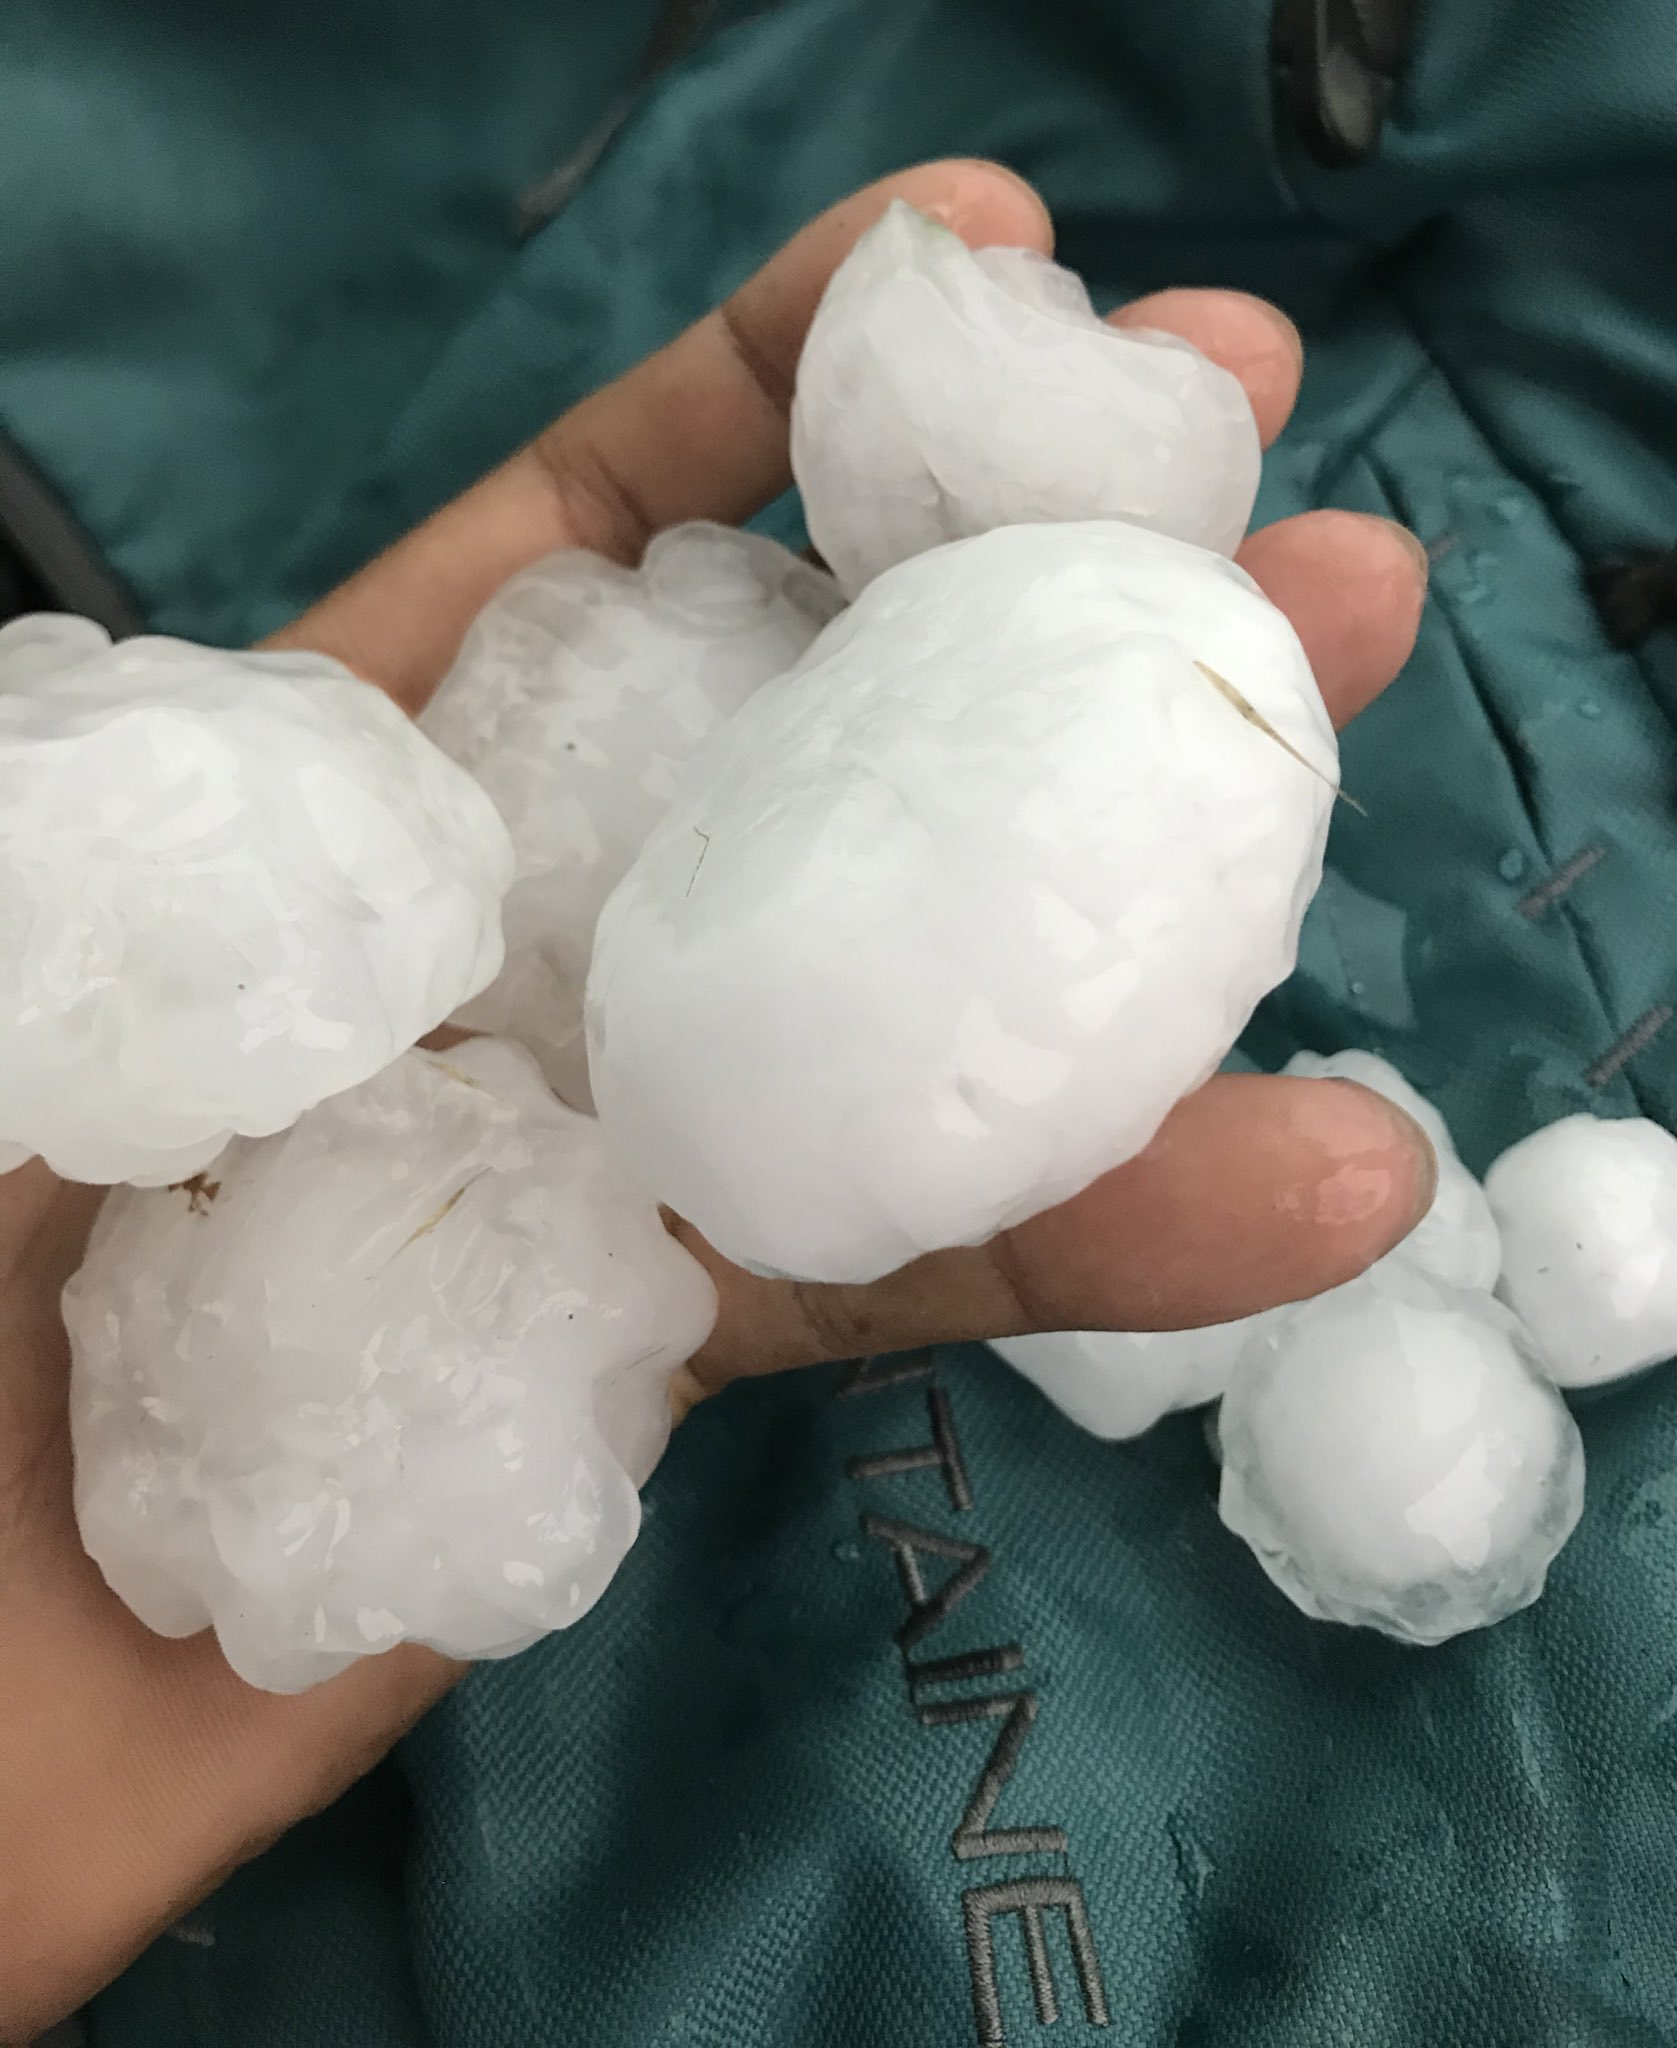 Large hail that fell in Silverton Saturday evening (23 May 2020). The picture is courtesy of Ian Shelton.